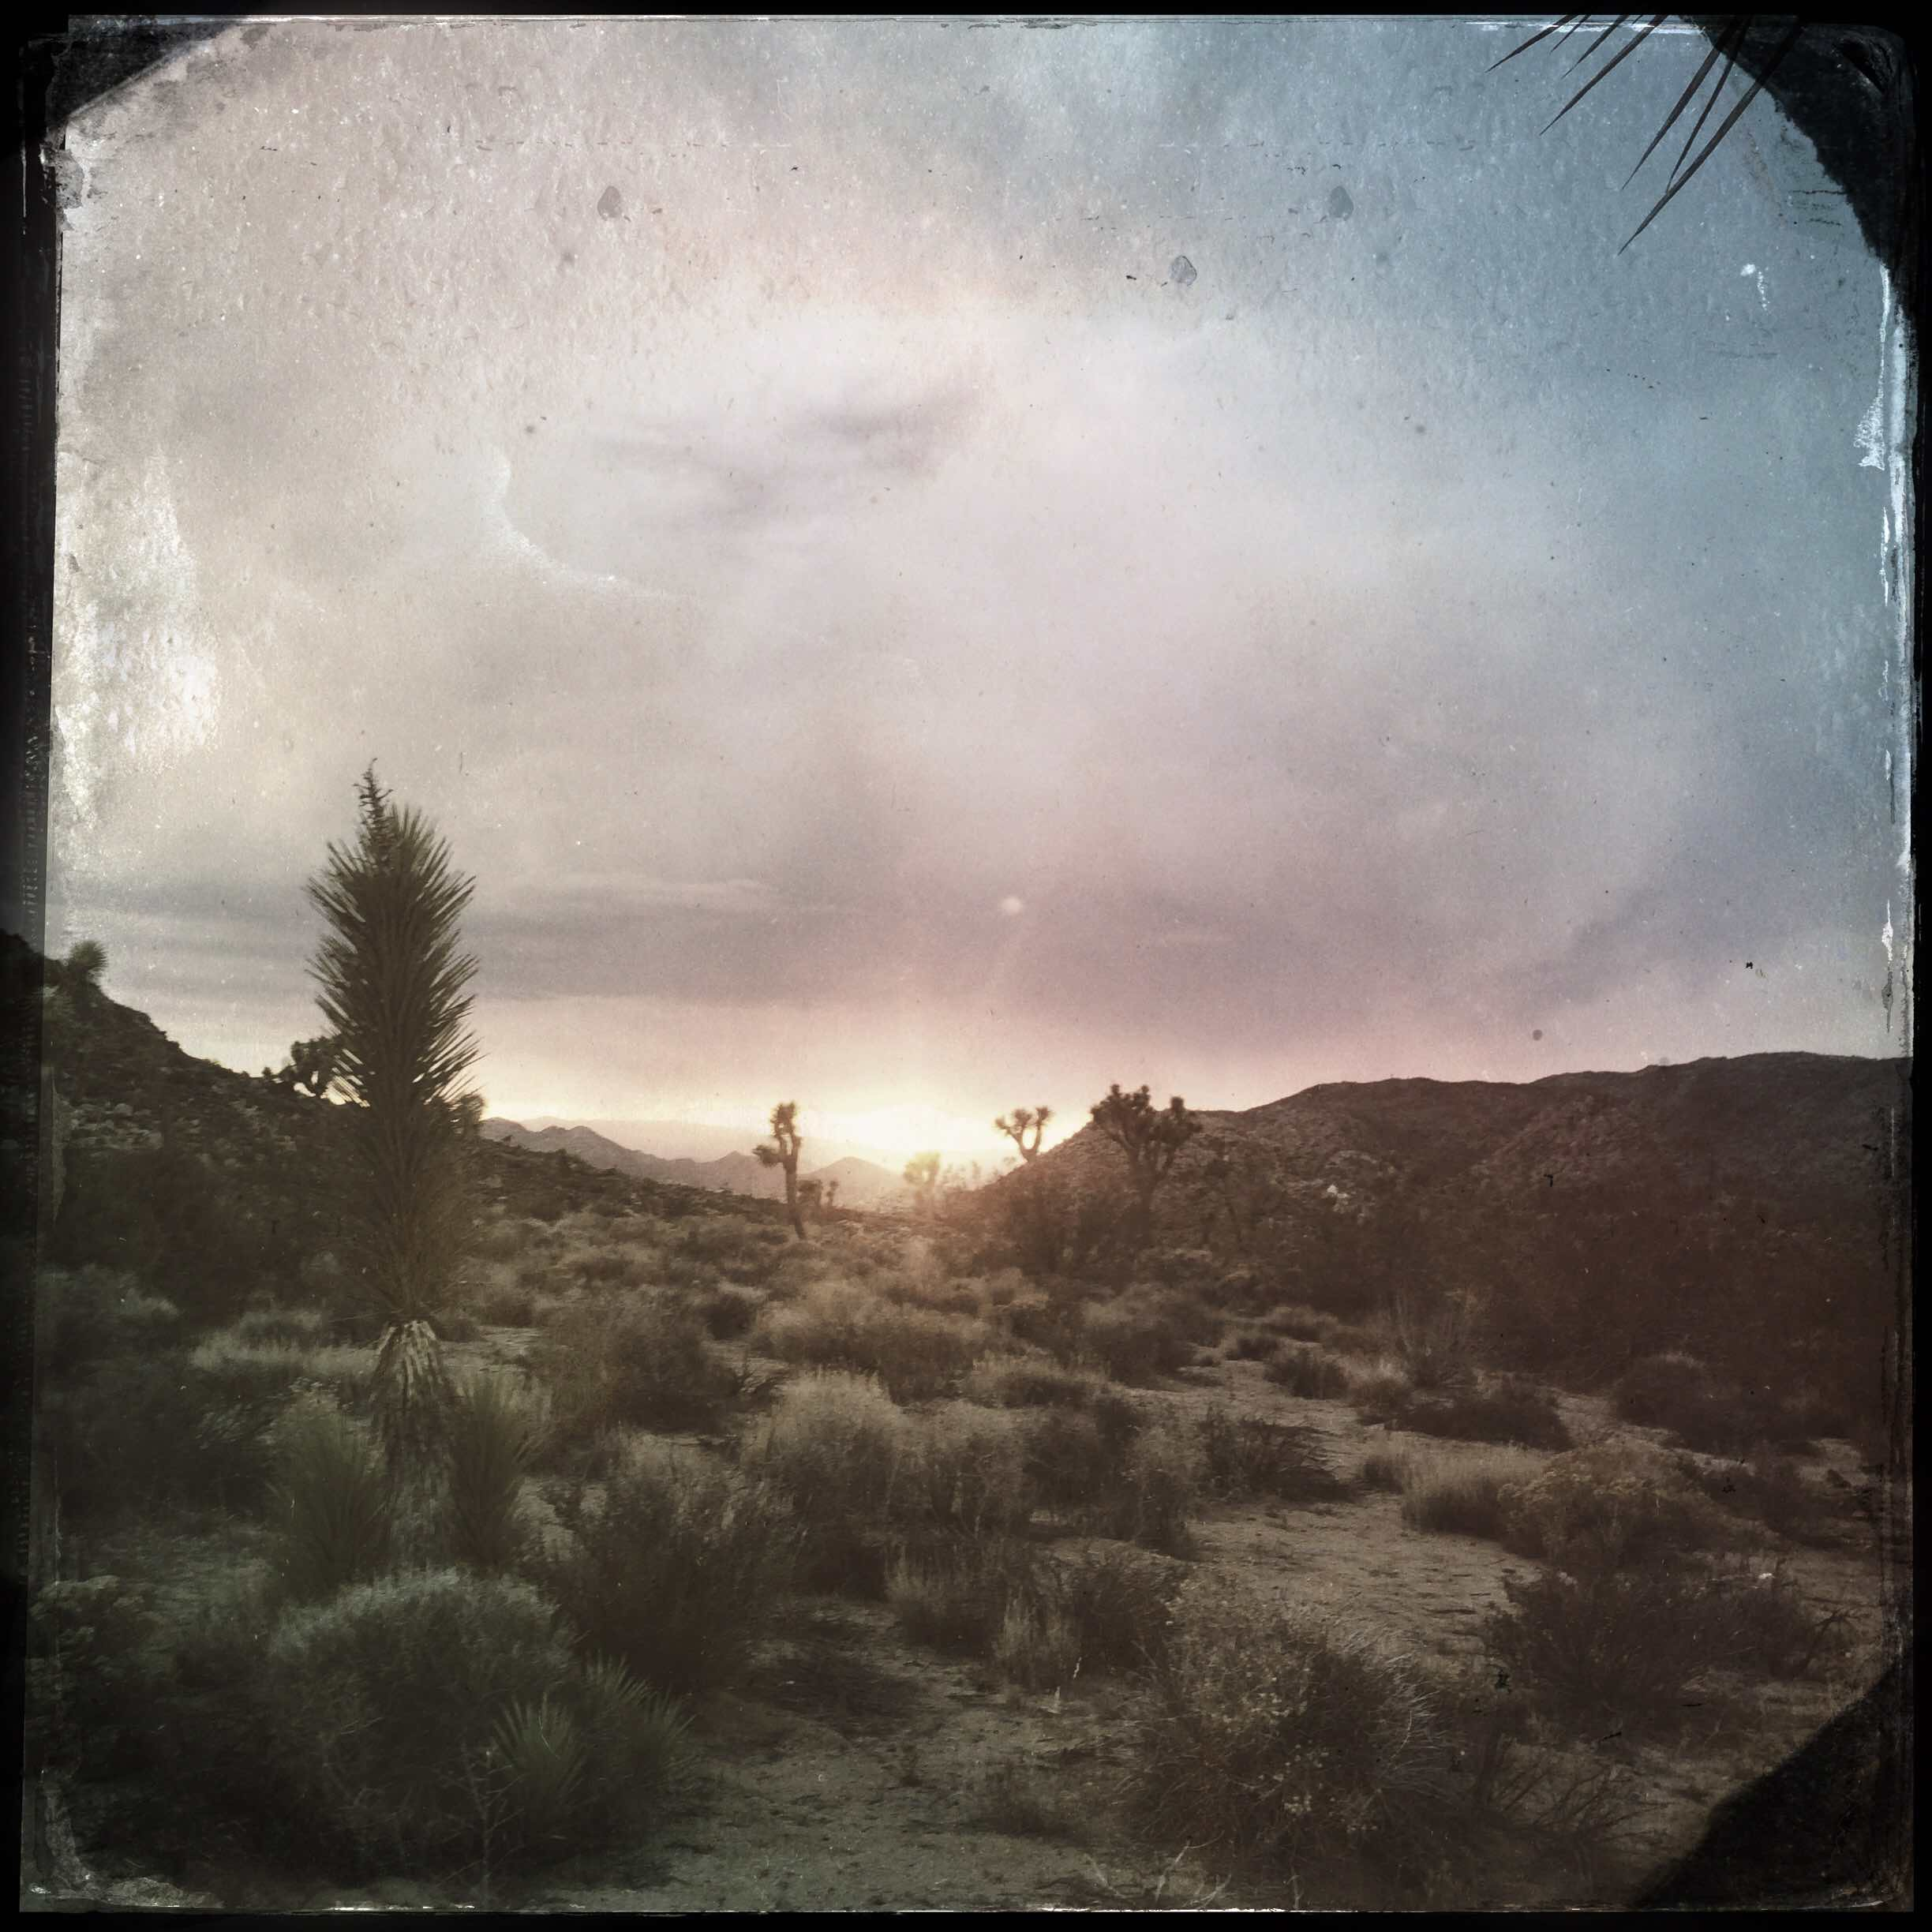 Upper Yucca Valley  Photograph,   13 June, 2015;  Copyright © Tennyson Woodbridge, 1963 to present. All appropriation rights reserved